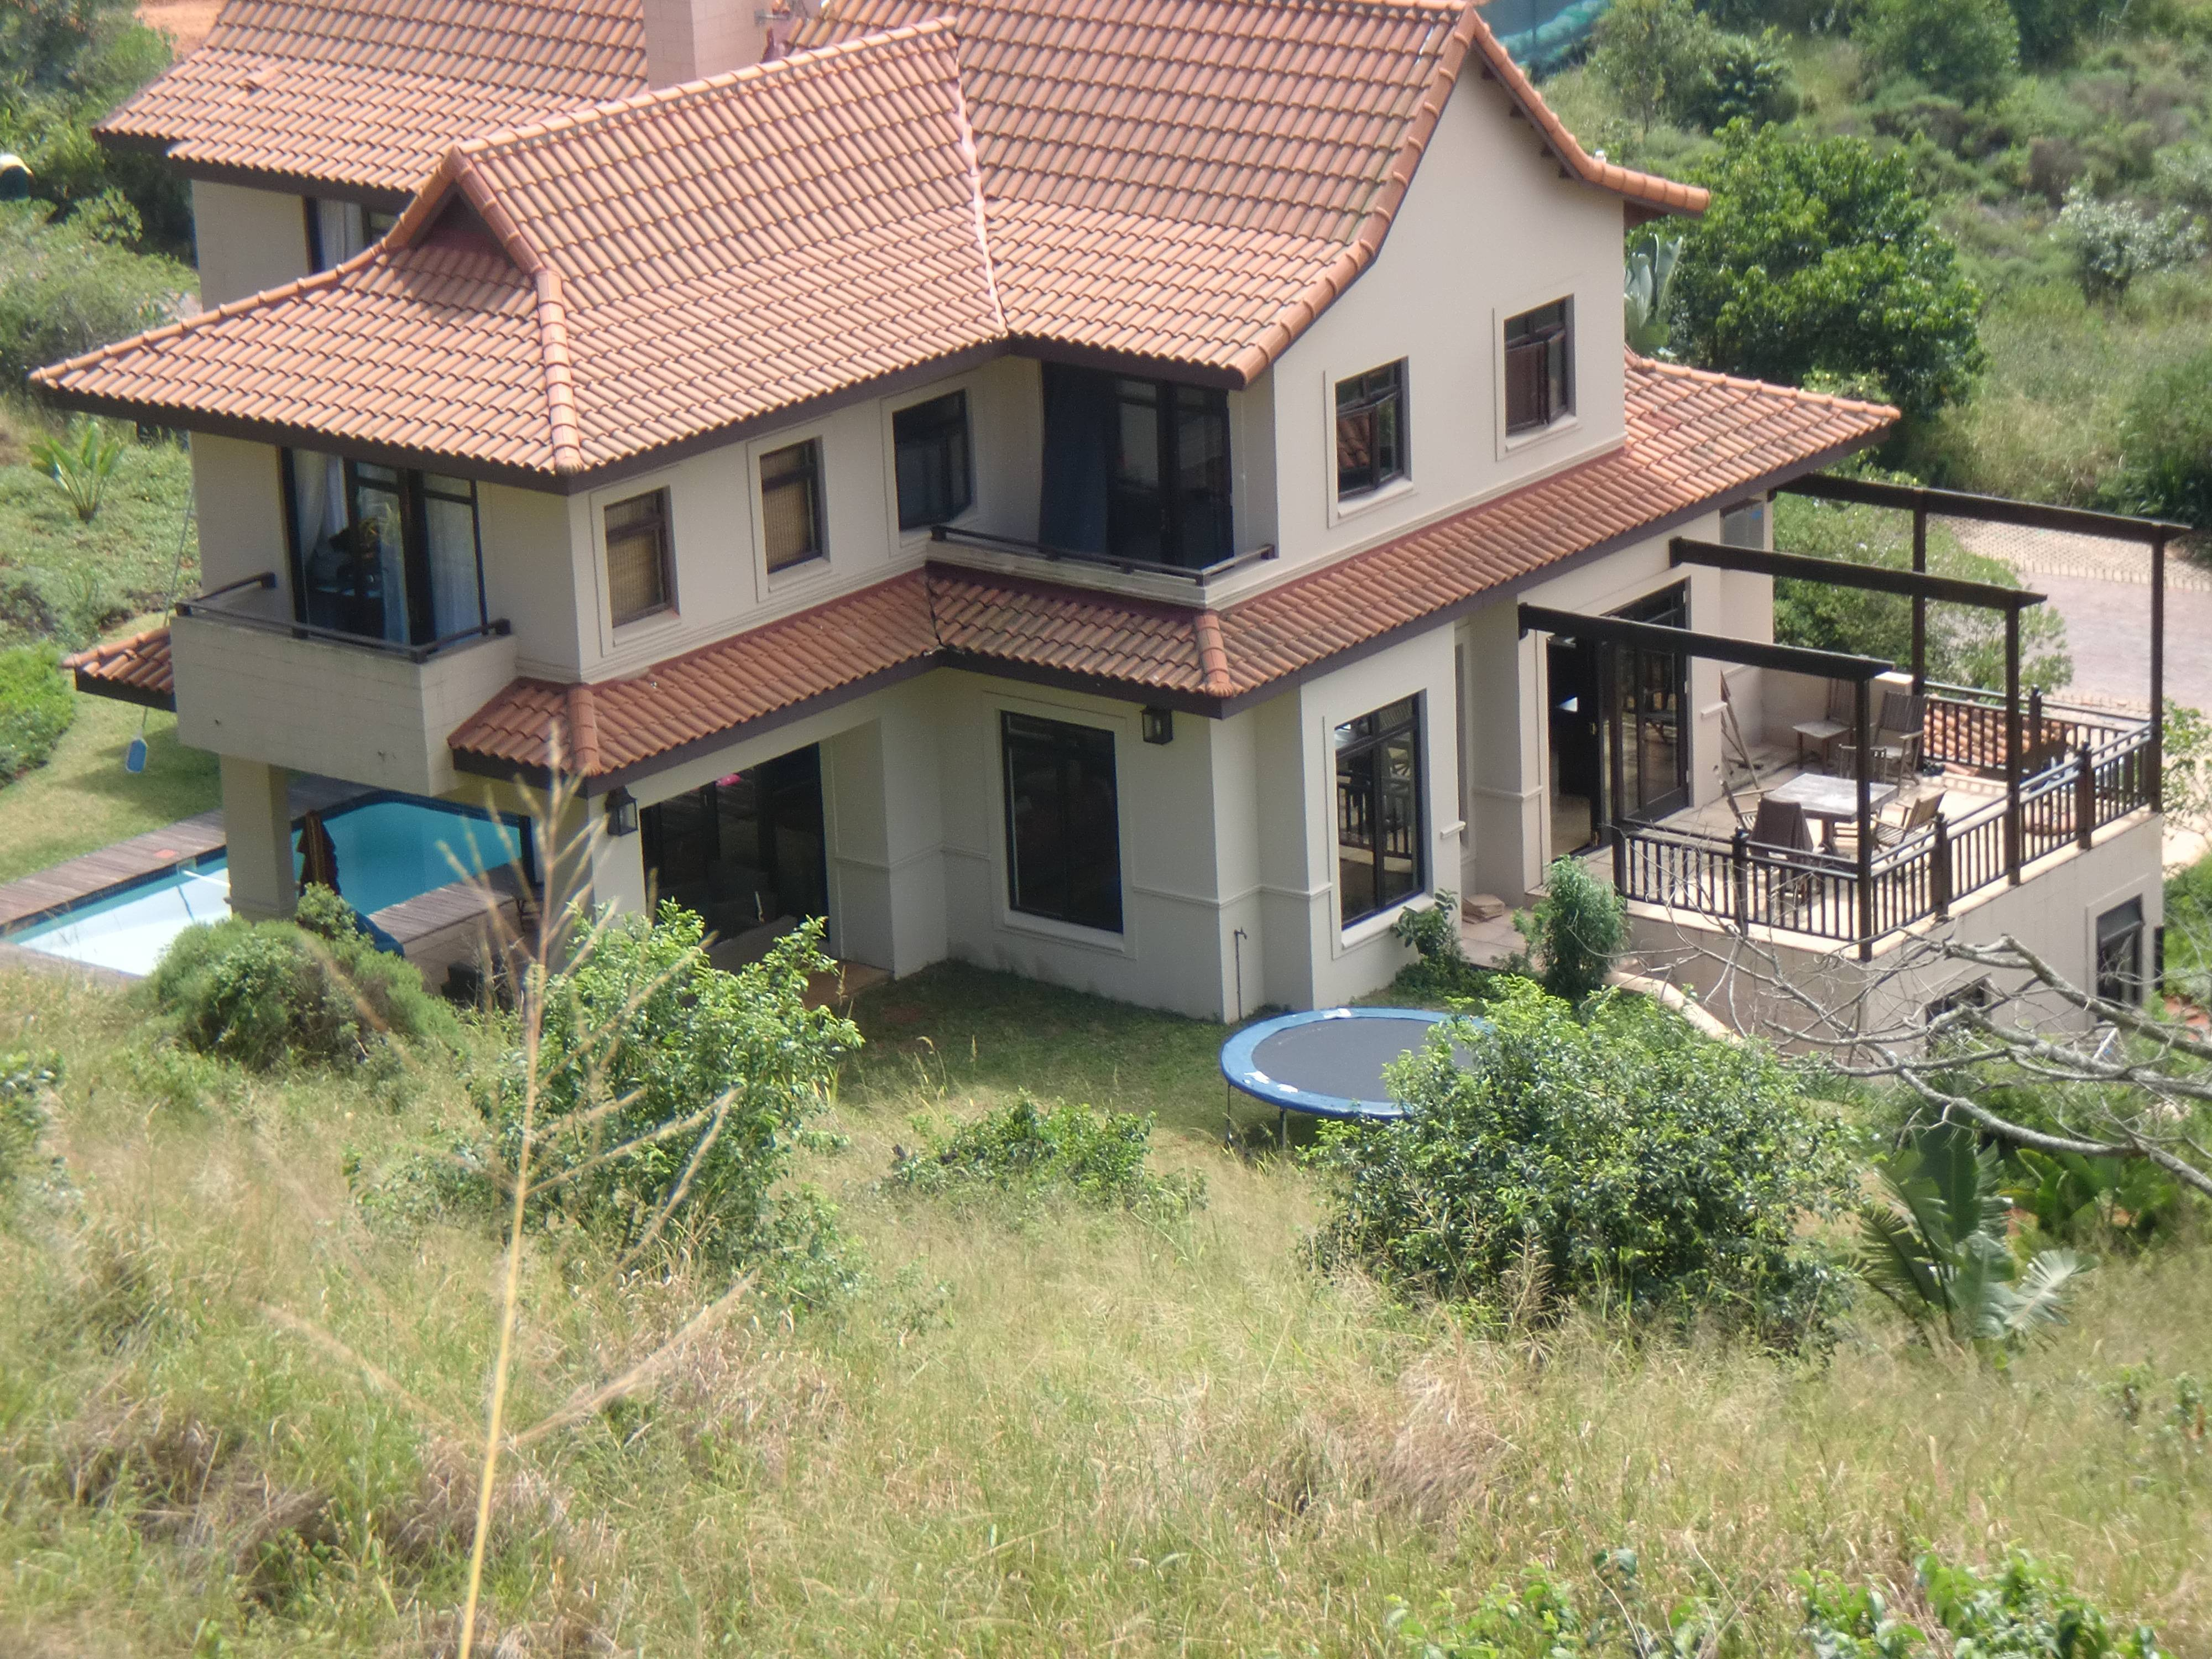 House for sale zimbali kwazulu natal south africa for Best houses in south africa pictures